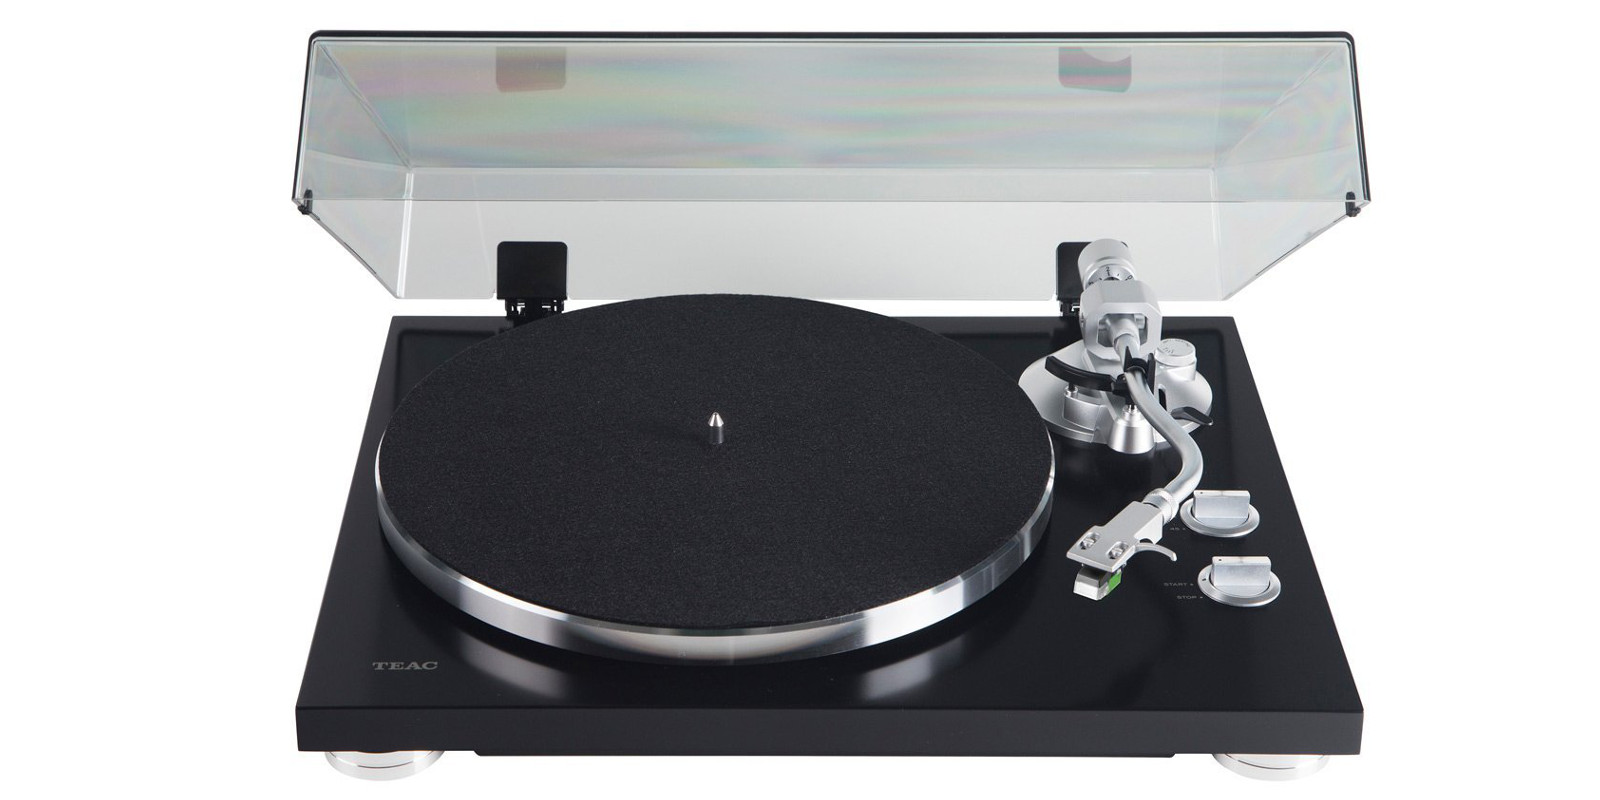 Teac's TN-400S 3-Speed Turntable with USB now $179 shipped (Reg. up to $350)